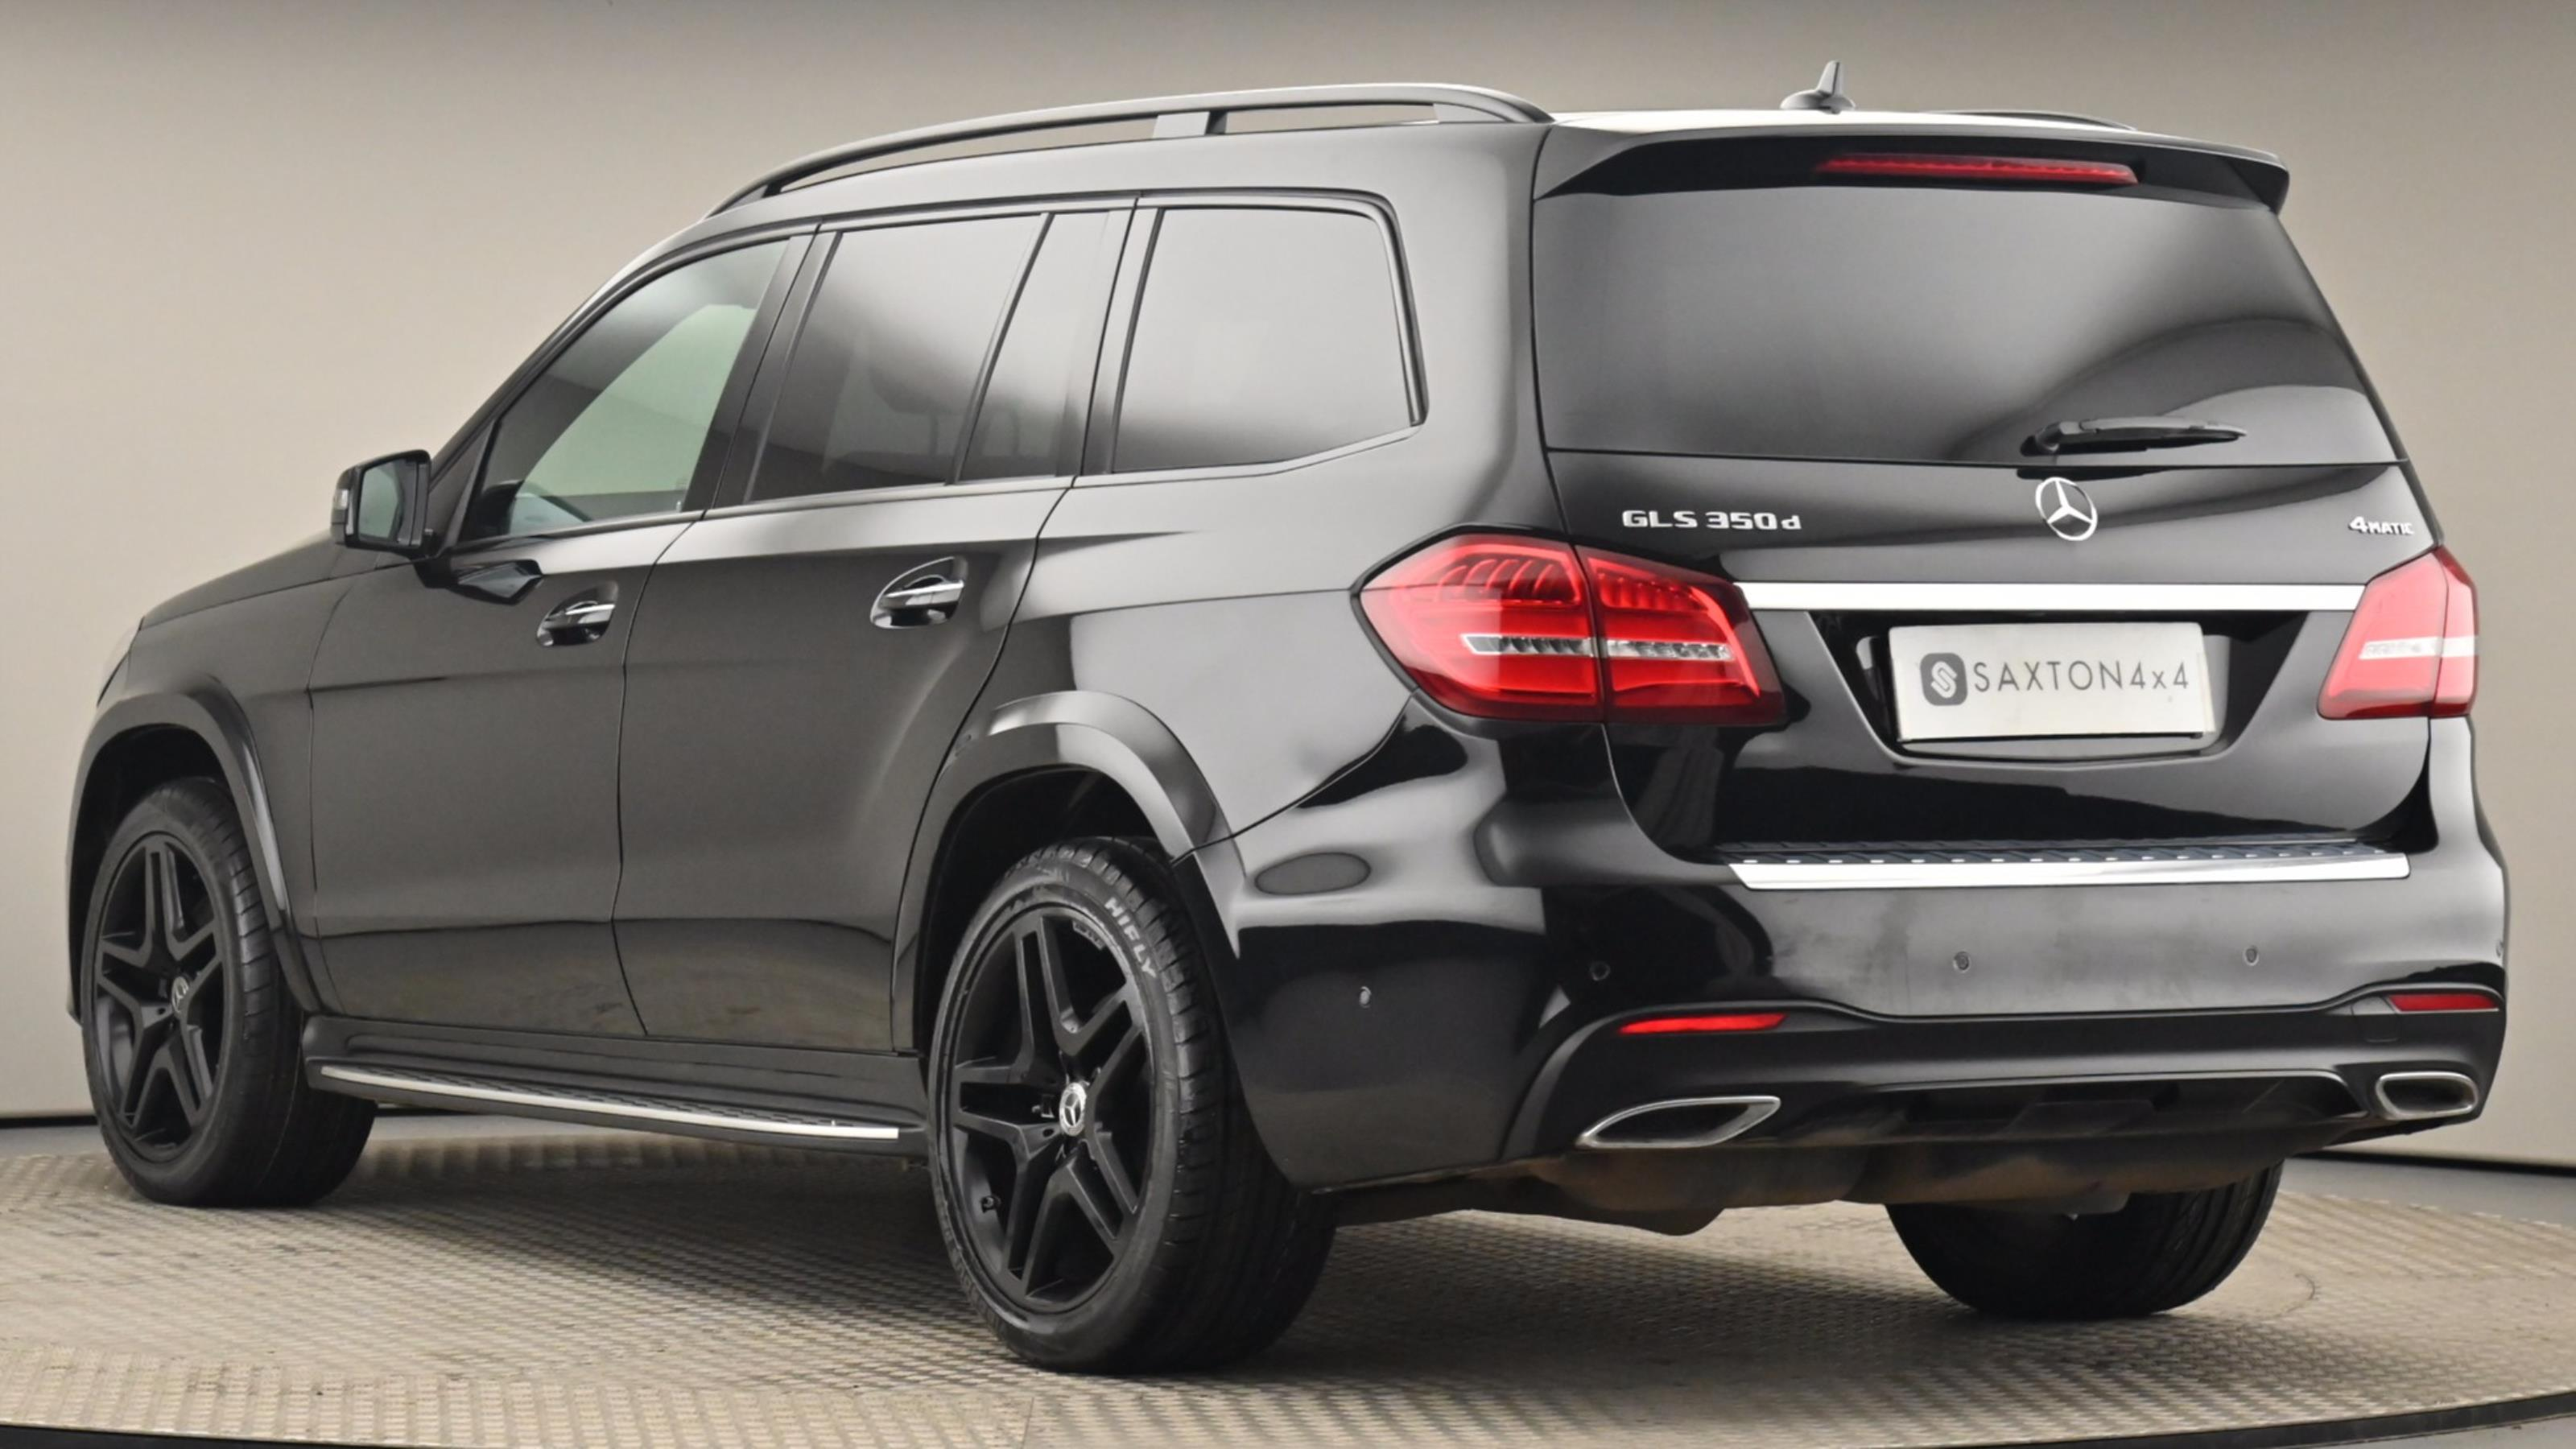 Used 2018 Mercedes-Benz GLS GLS 350d 4Matic AMG Line 5dr 9G-Tronic BLACK at Saxton4x4